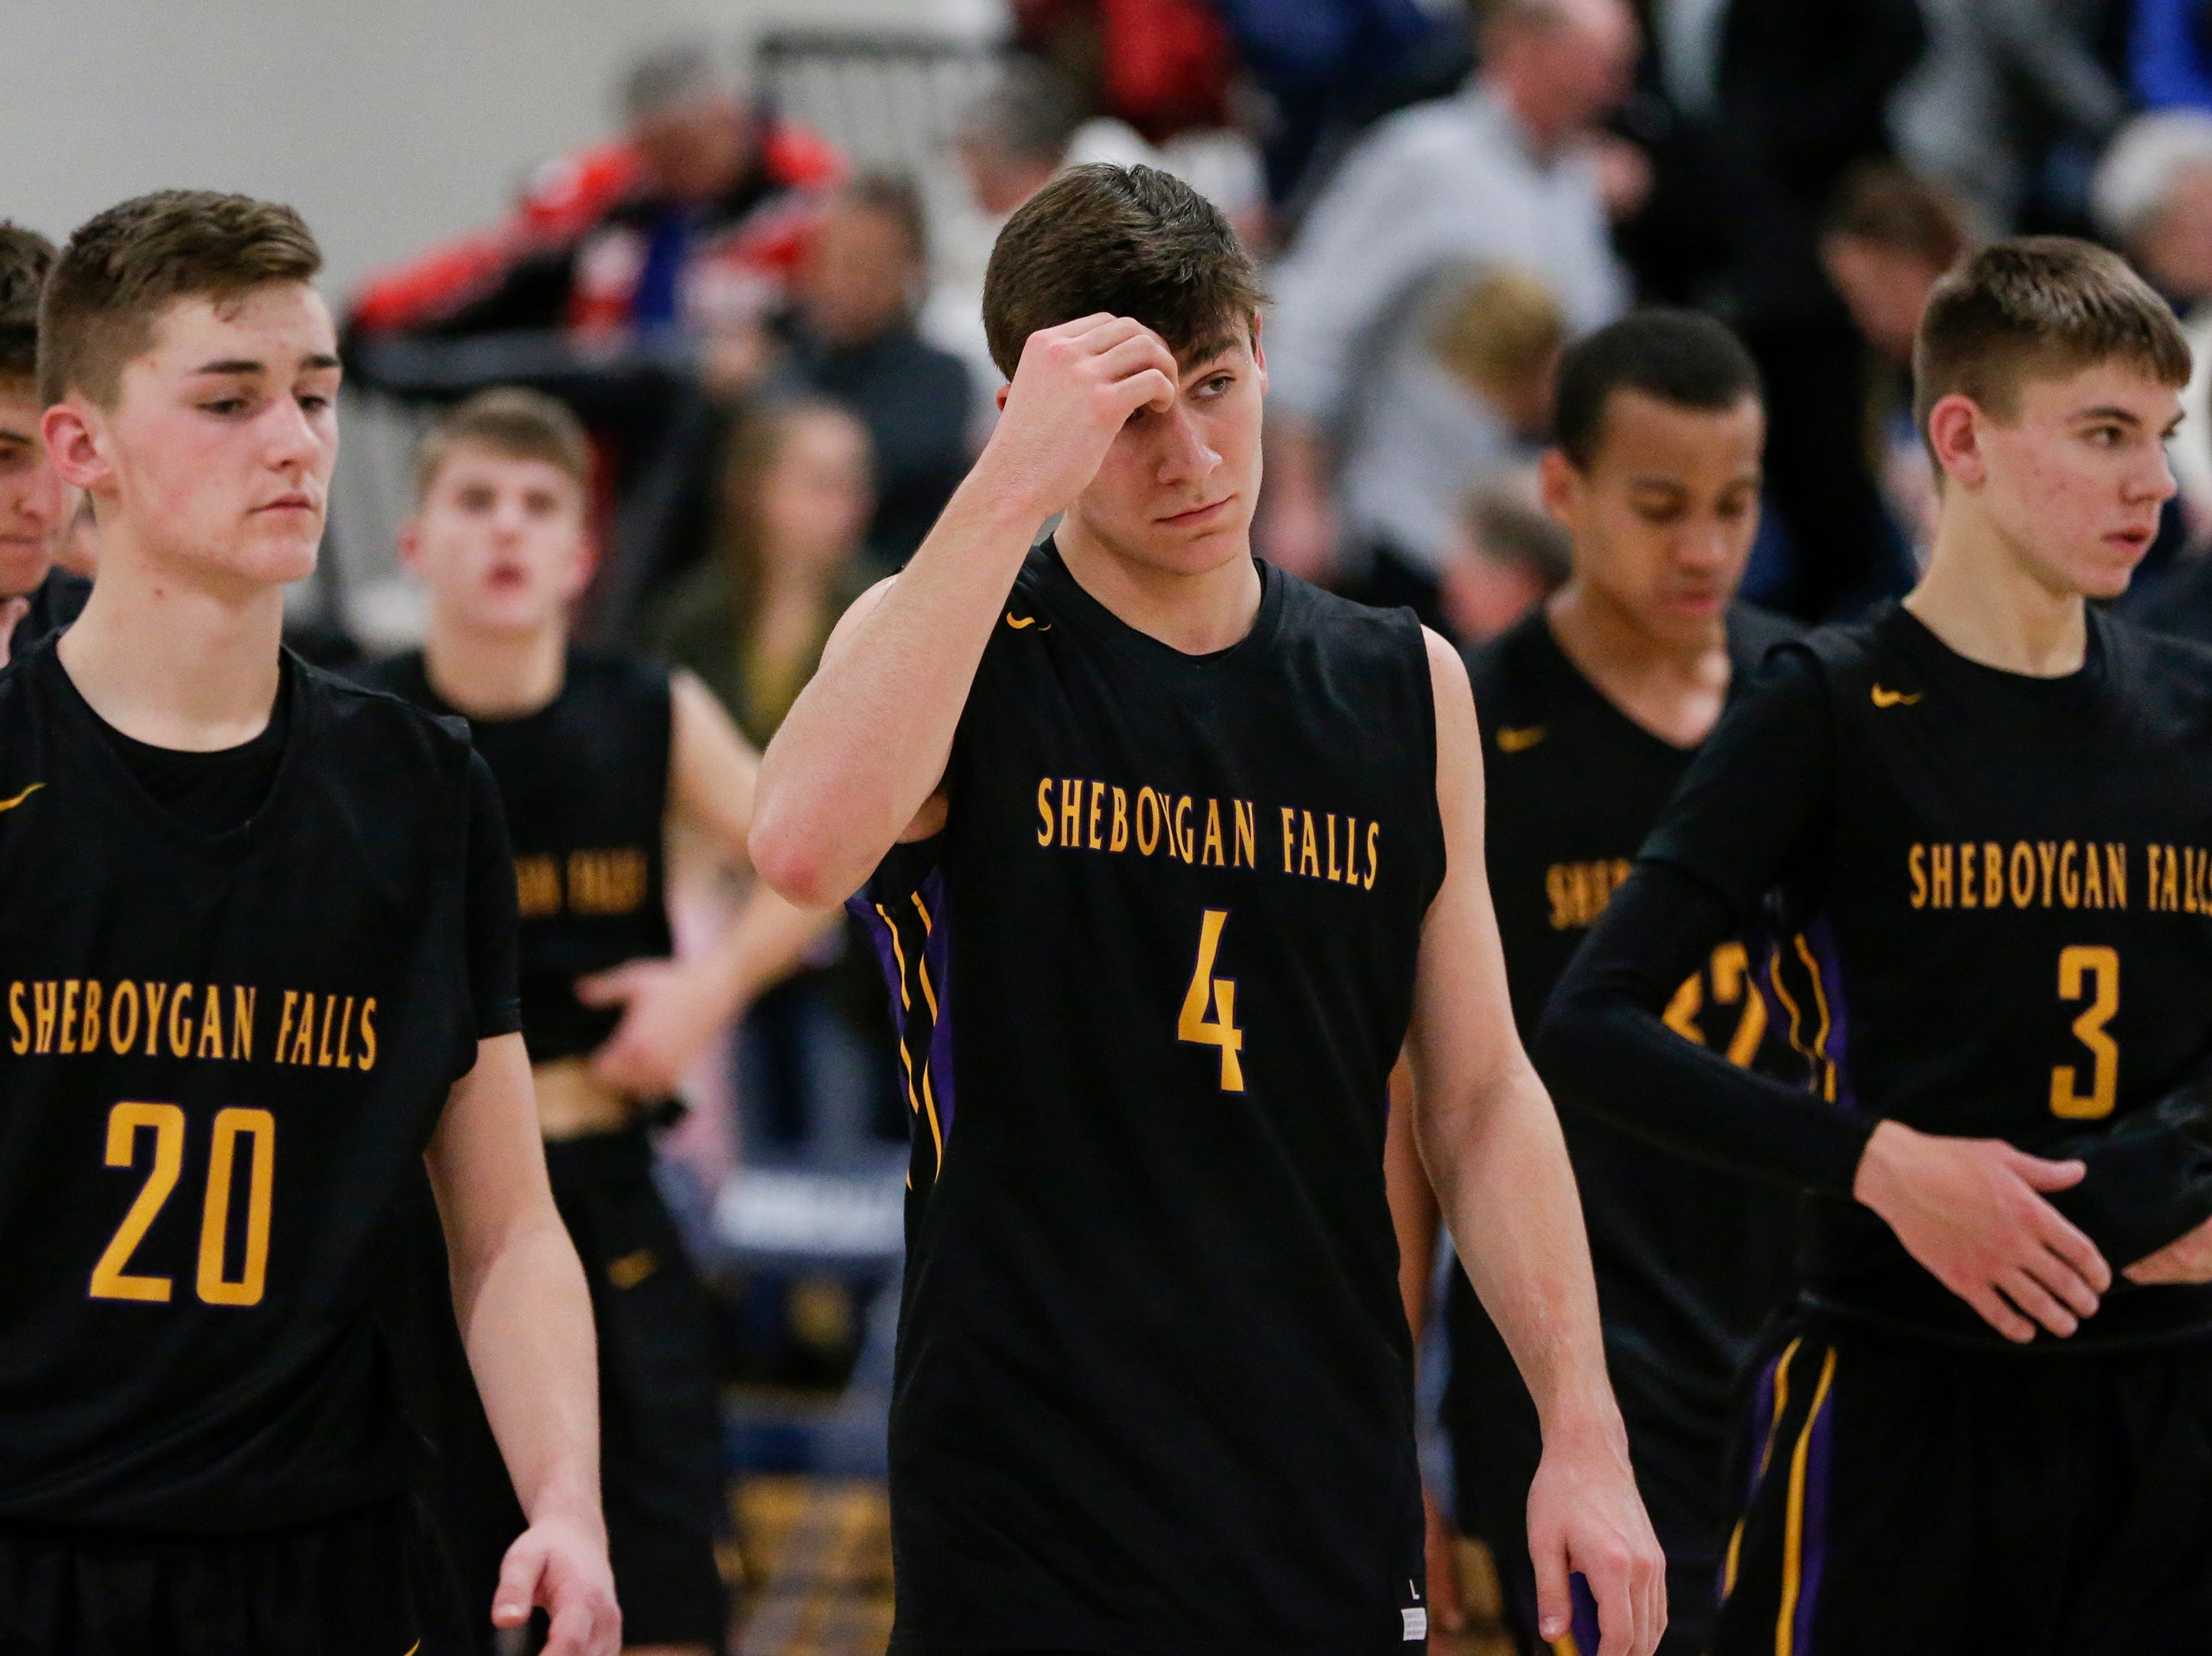 Sheboygan Falls walks back to the locker room after losing their first conference game of the season to Roncalli 72-35 at Roncalli High School Thursday, January 10, 2019, in Manitowoc, Wis. Joshua Clark/USA TODAY NETWORK-Wisconsin